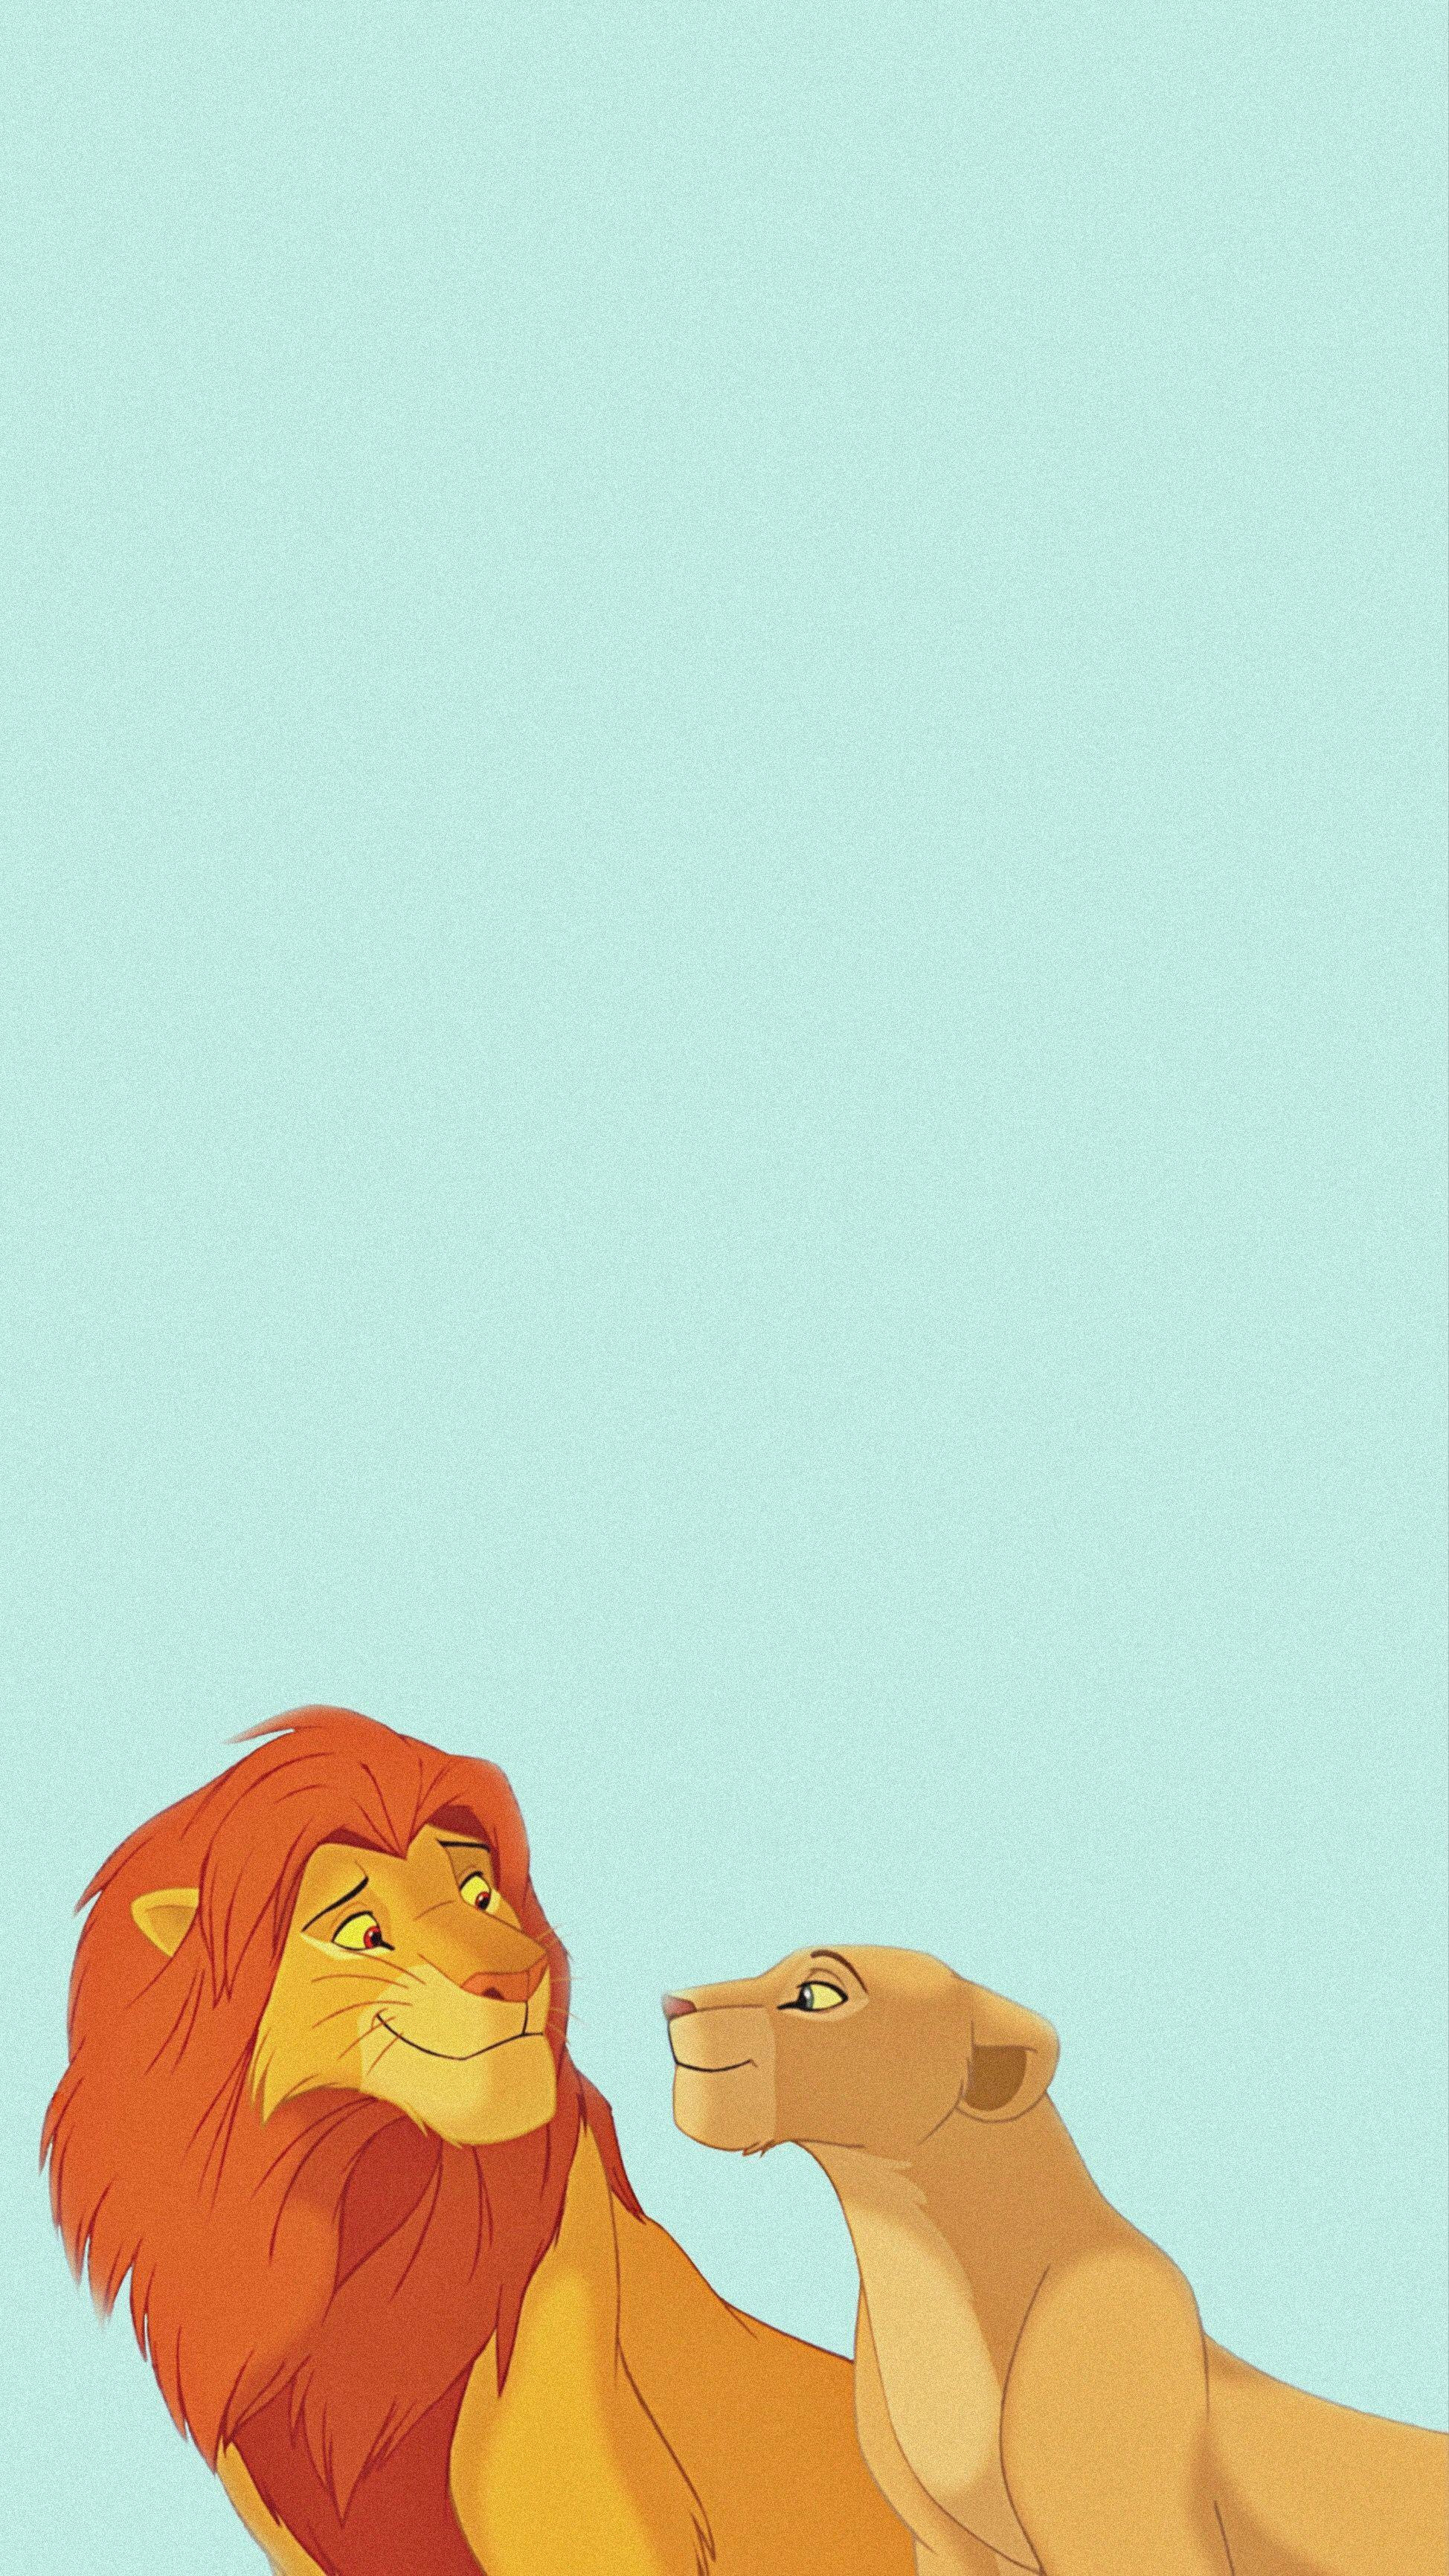 Simba The Lion King The Lion King Wallpapers Simba Wallpapers Movies Wallpapers Lion Wallpapers Hd The Lion King Wallpaper Disney Wallpaper Simba Wallpaper